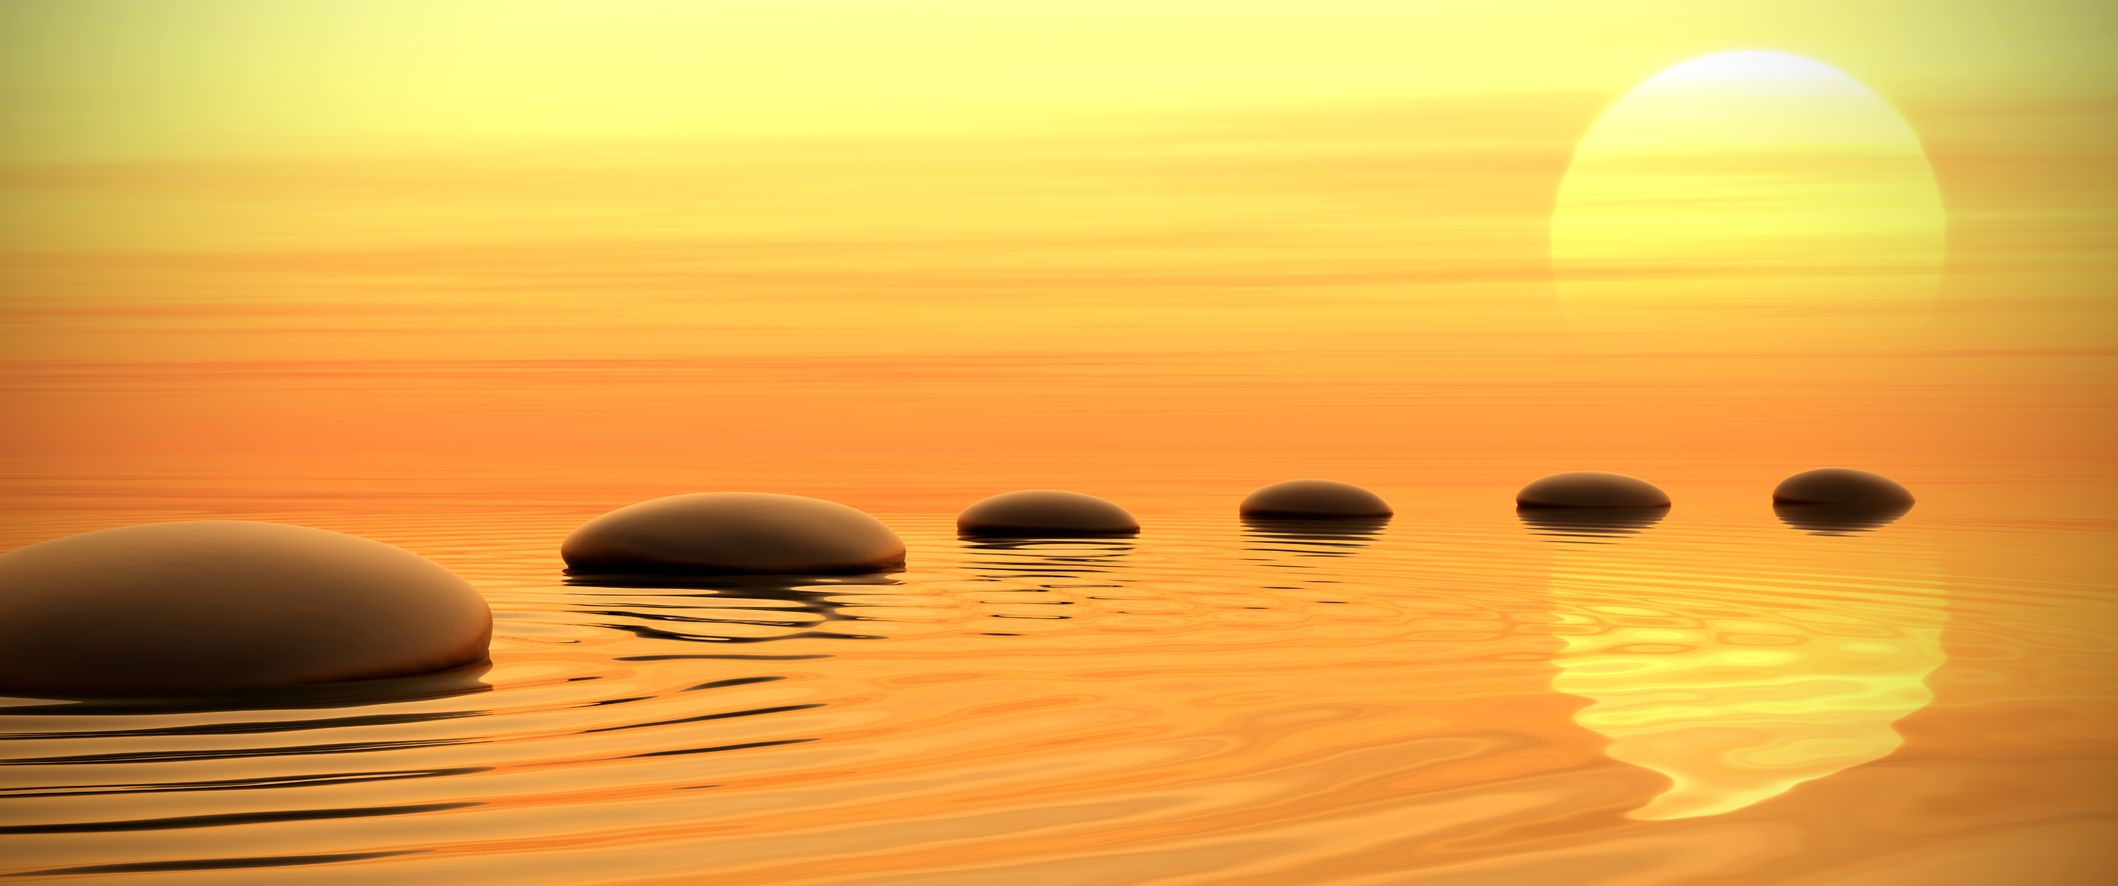 Any advice for someone who wants to start meditation? 1